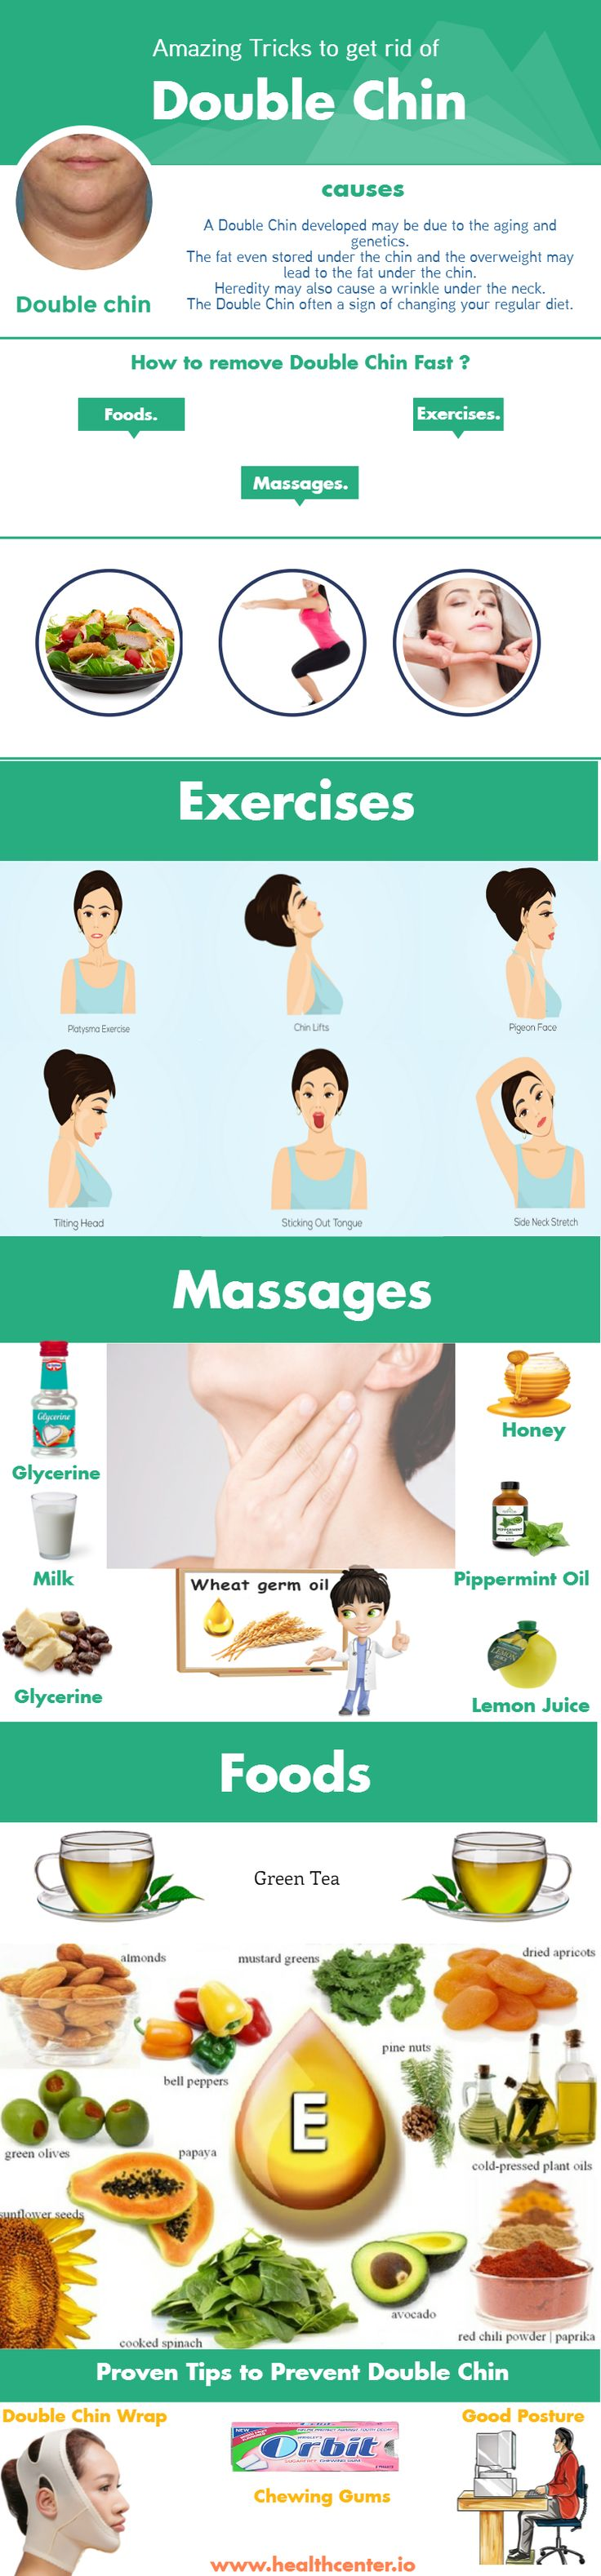 How to lose Double Chin? Reduce facial fat to Get rid of Double Chin. Best 10 Exercise for Double Chin Reduction. Fast & Easy Home Remedies for Double Chin.